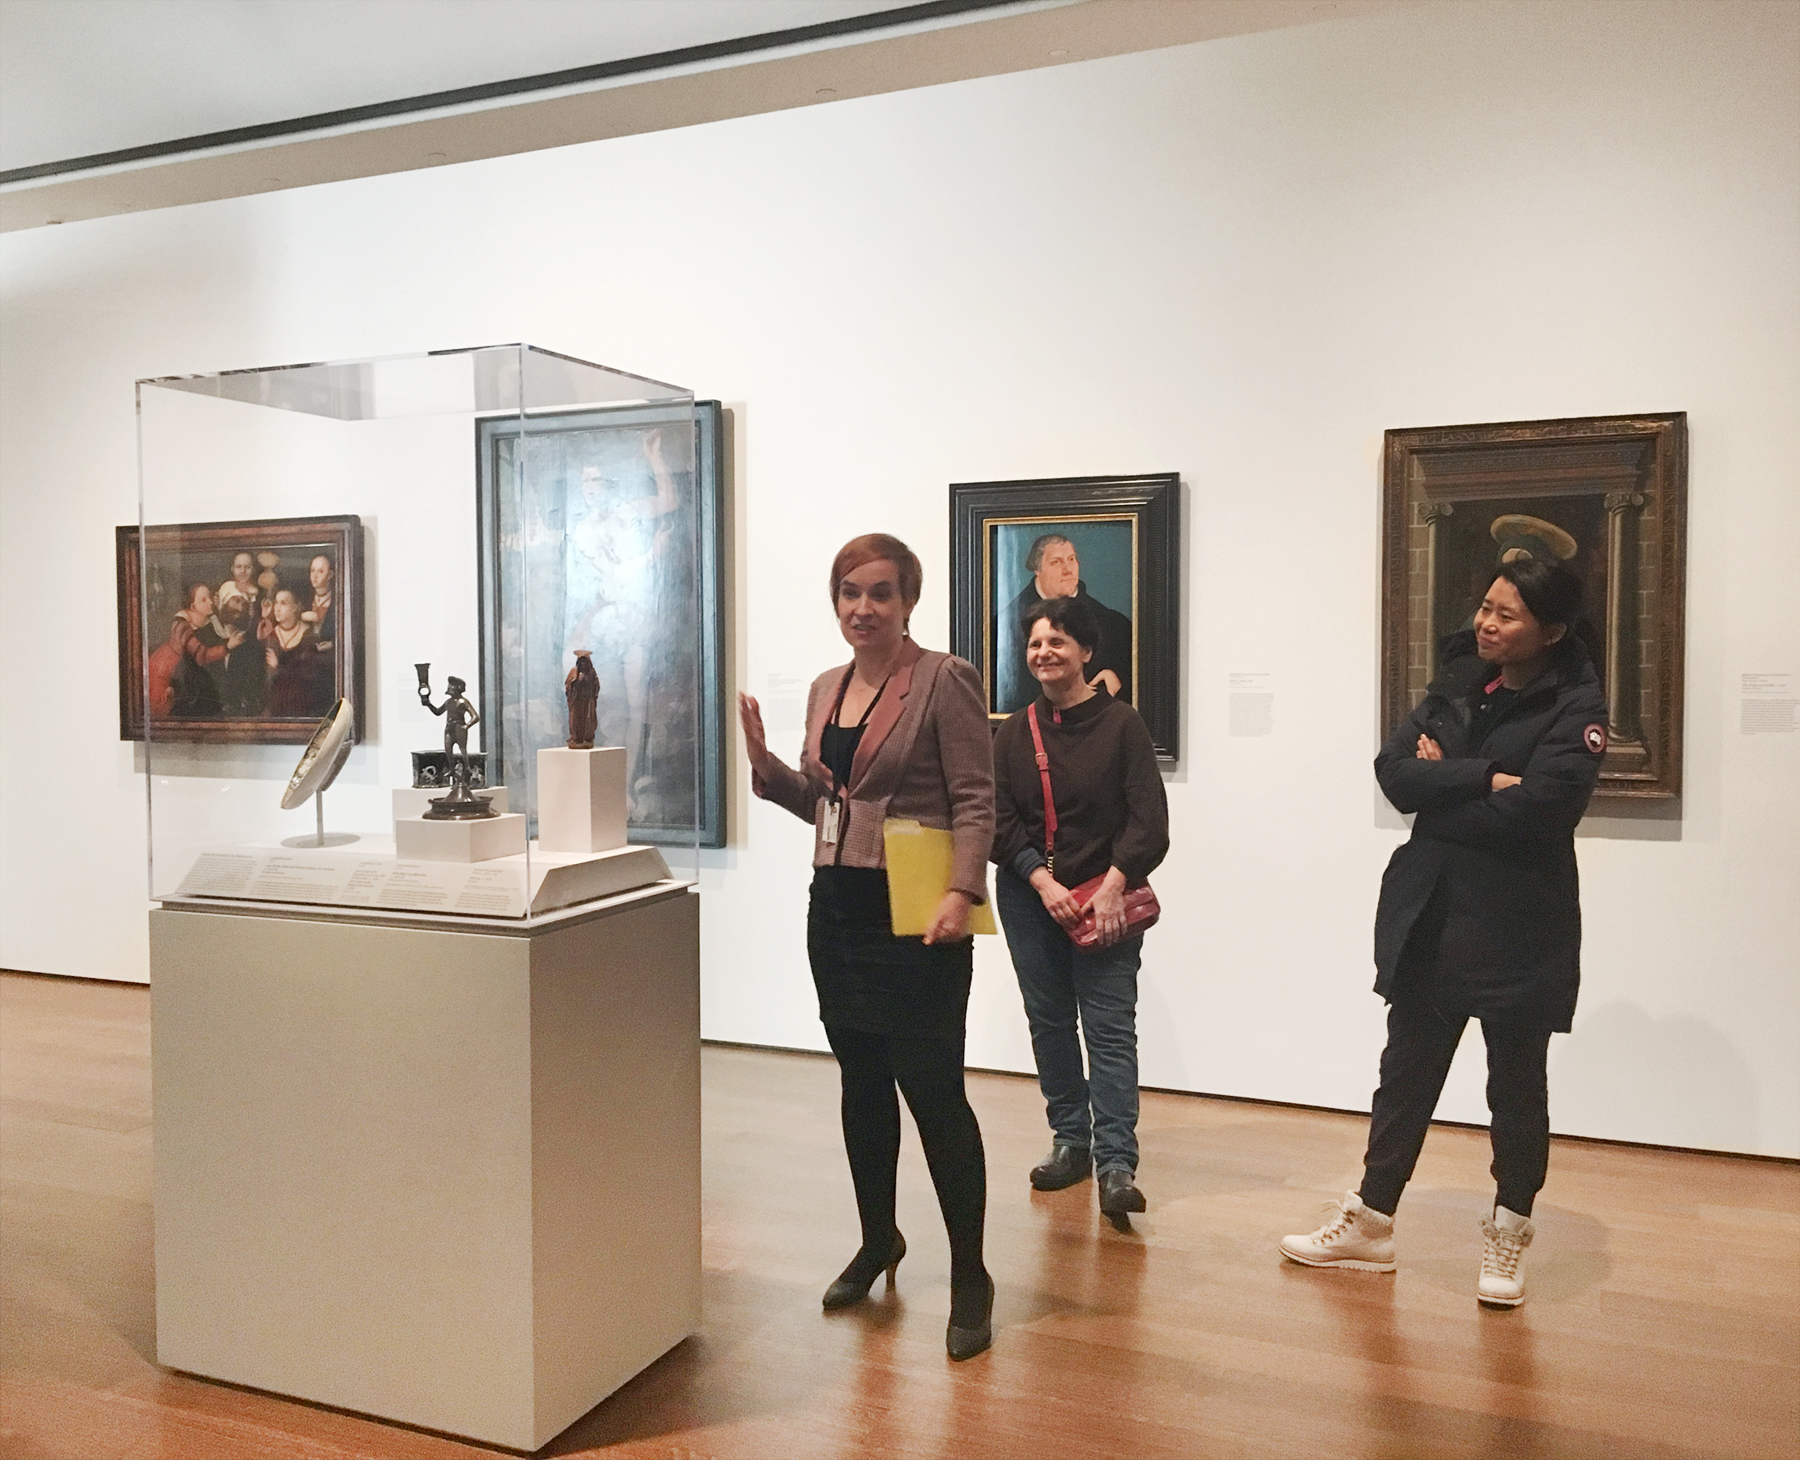 Szalay stands next to a display case in the center of the Renaissance gallery, discussing the contents inside. Four paintings hang on the wall behind her and guests stand beside her.